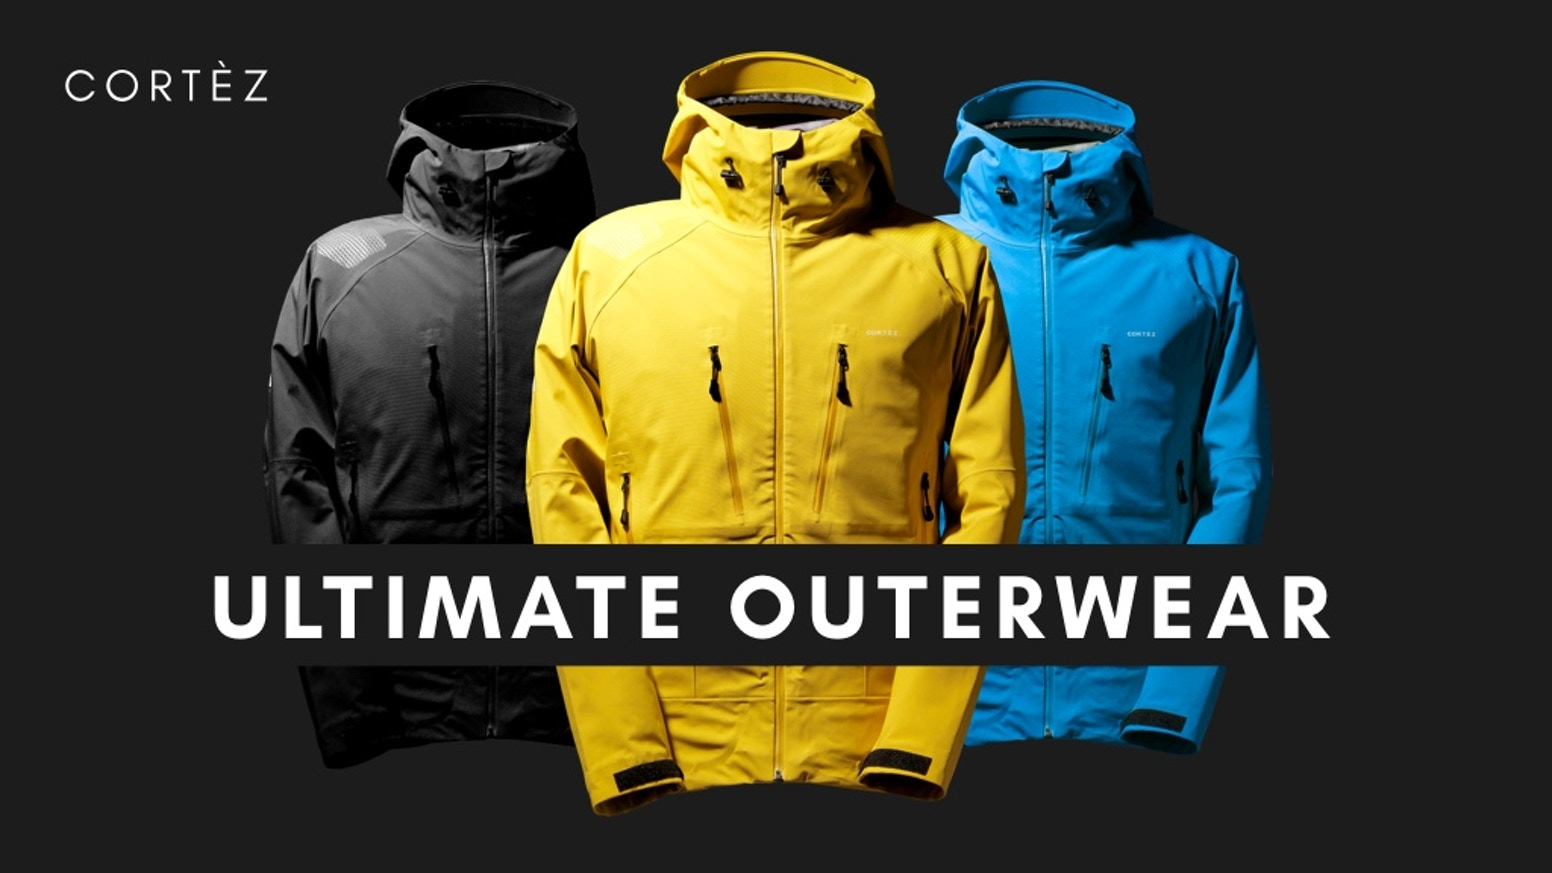 The Jacket for all your adventures. High-Quality materials - Outstanding  Design - Excellent